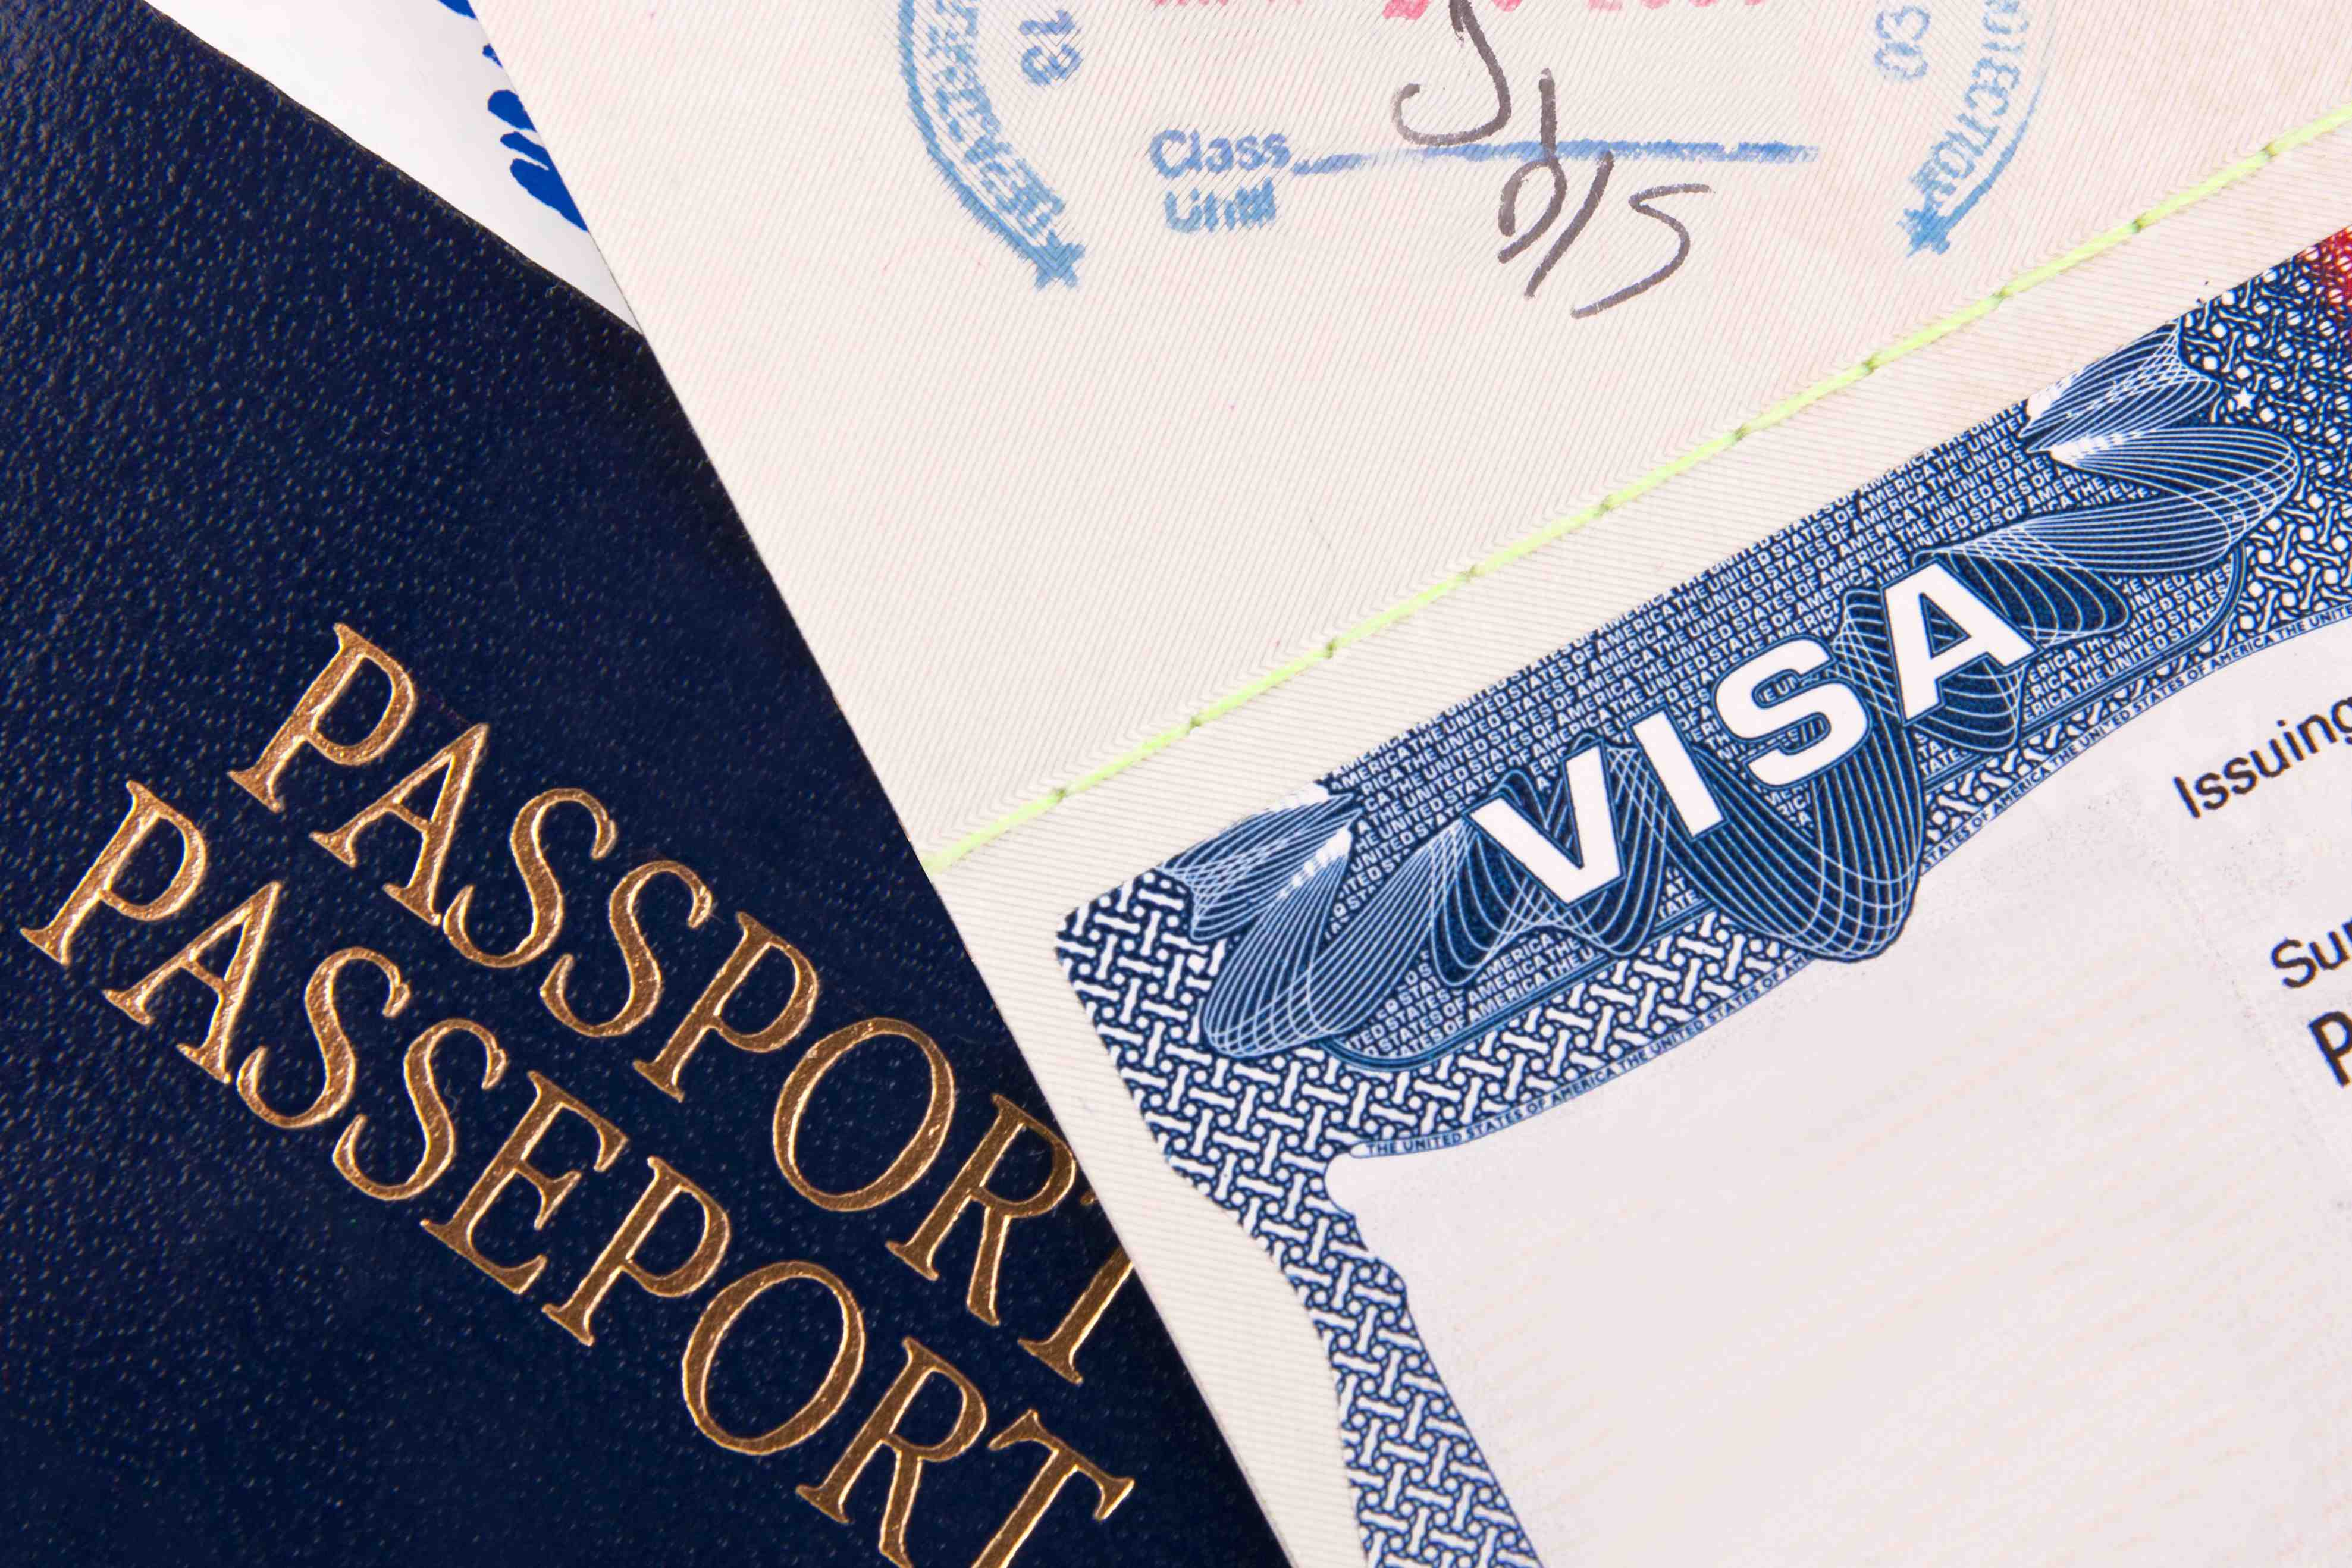 Passport and US Visa | U.S. Embassy in Barbados, the Eastern Caribbean, and  the OECS